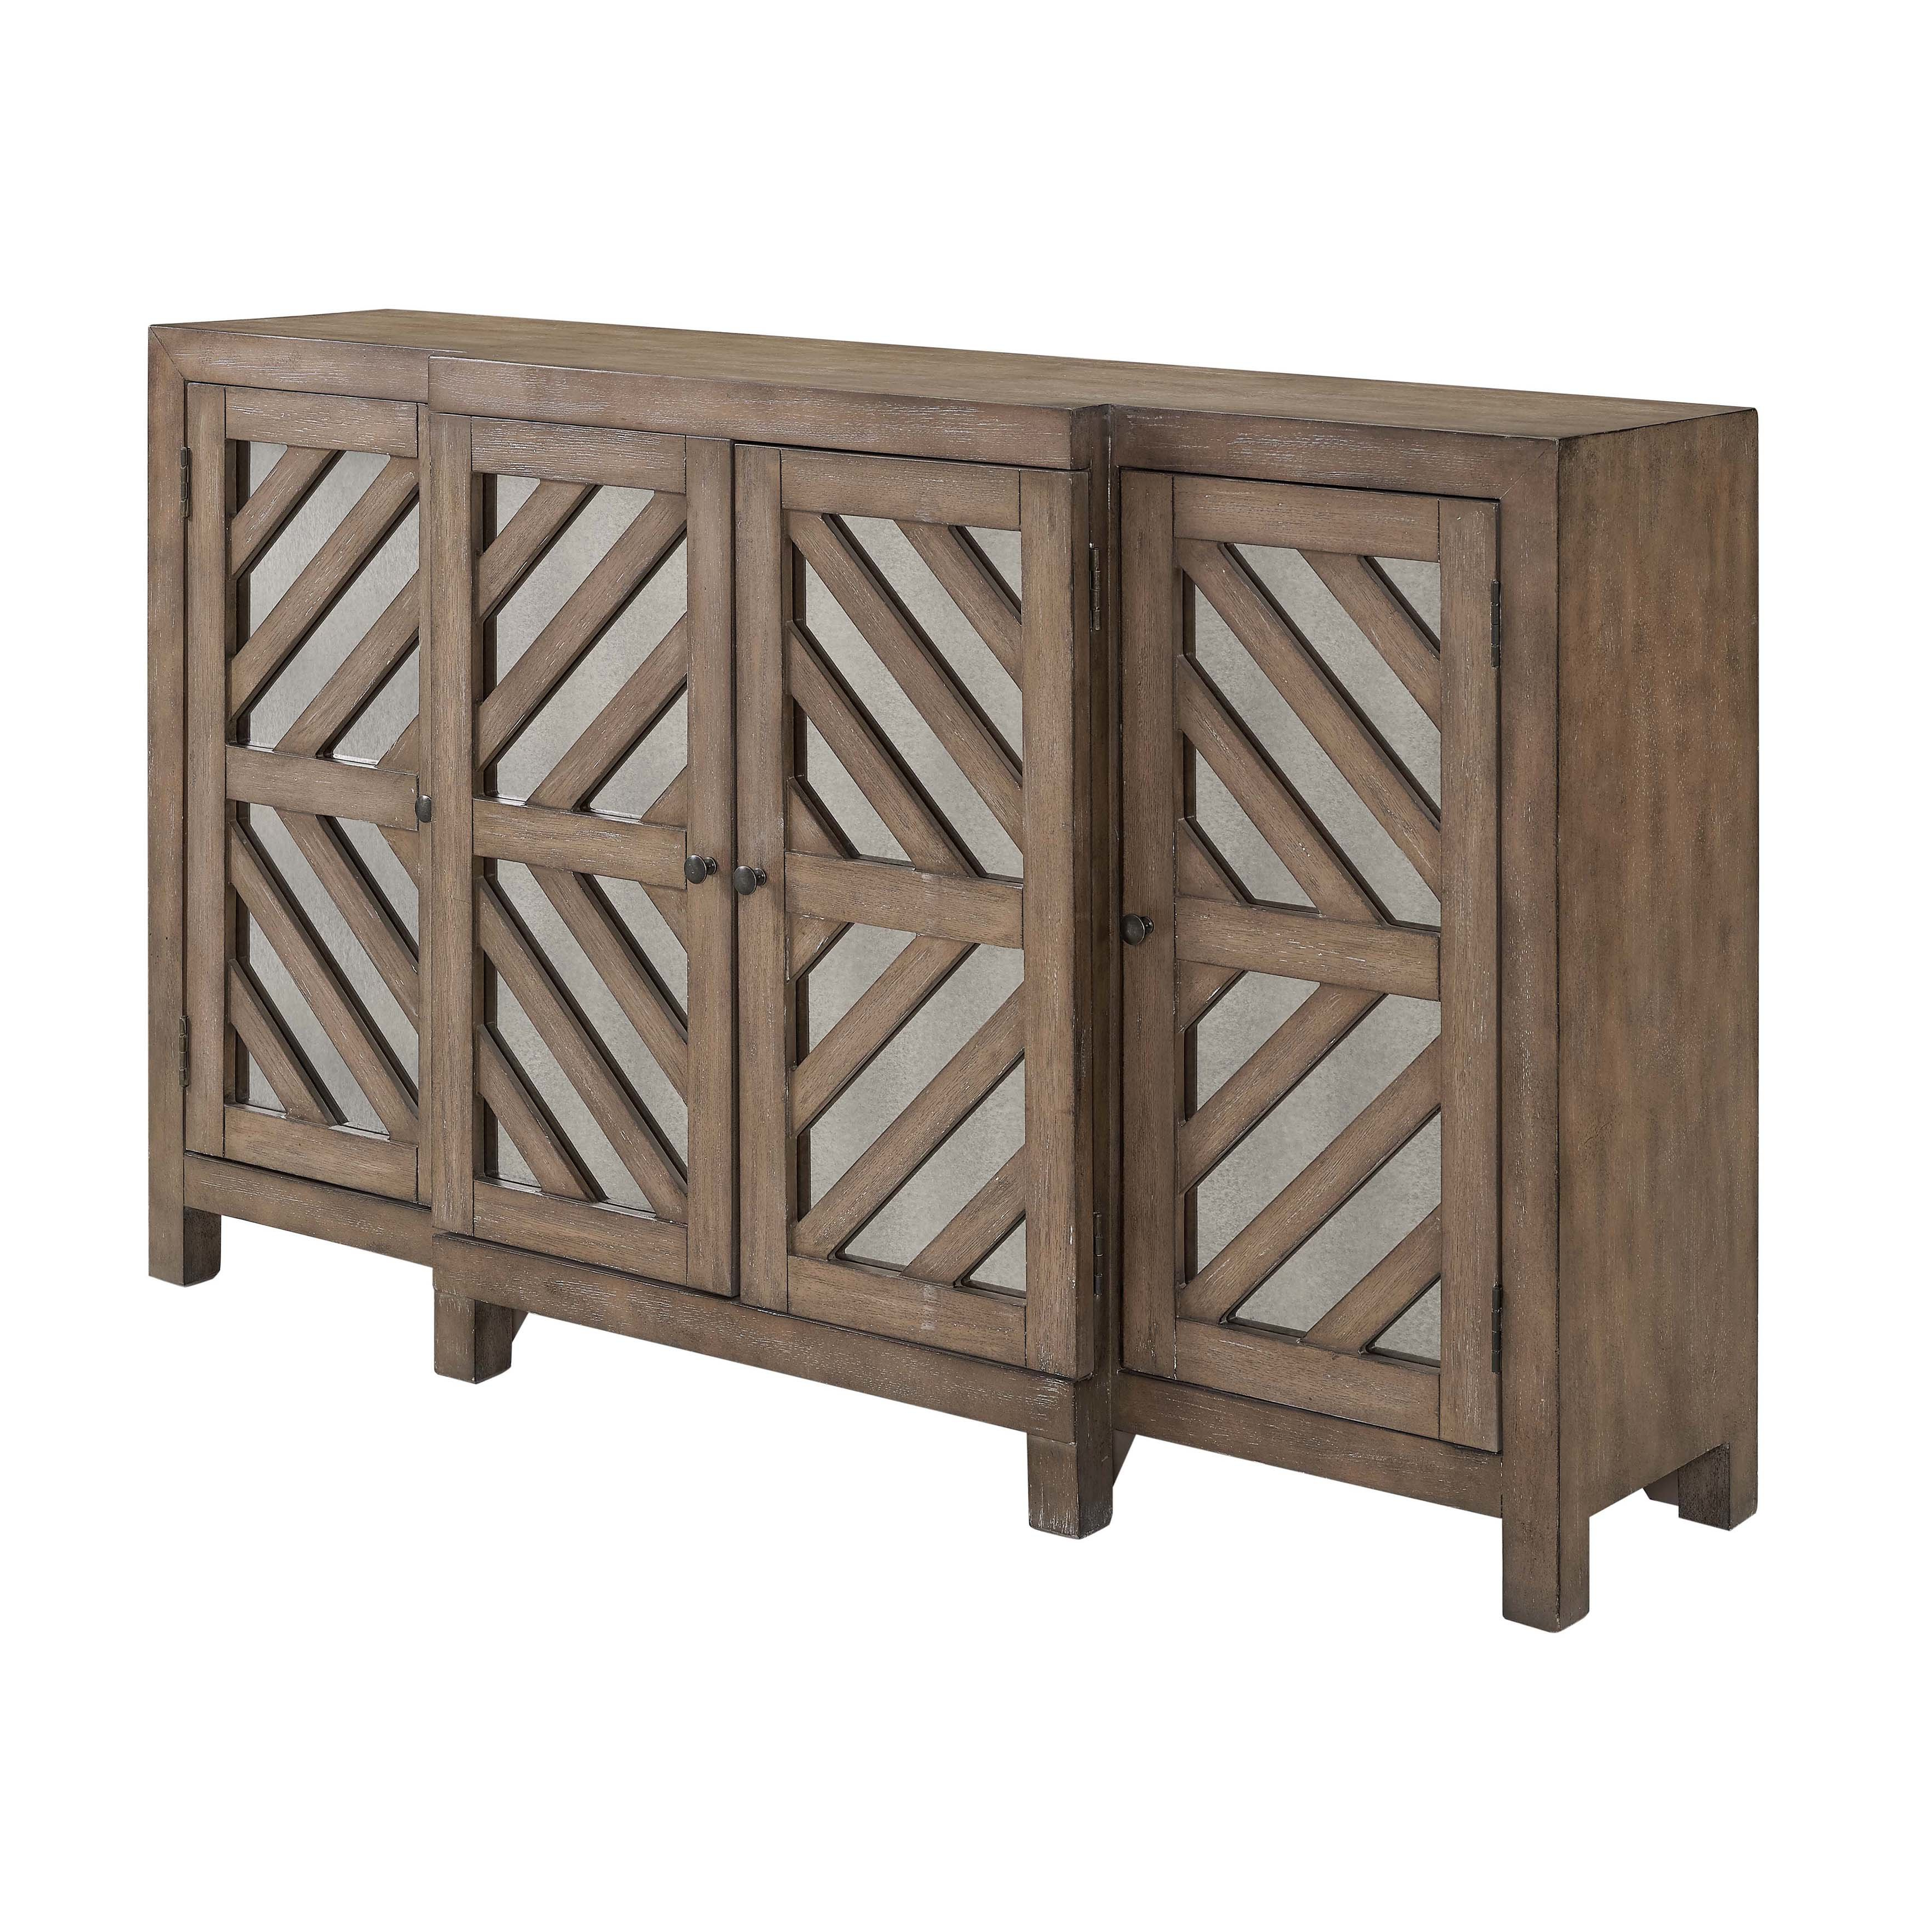 Modern & Contemporary Deny Credenza | Allmodern Throughout Lainey Credenzas (View 13 of 20)